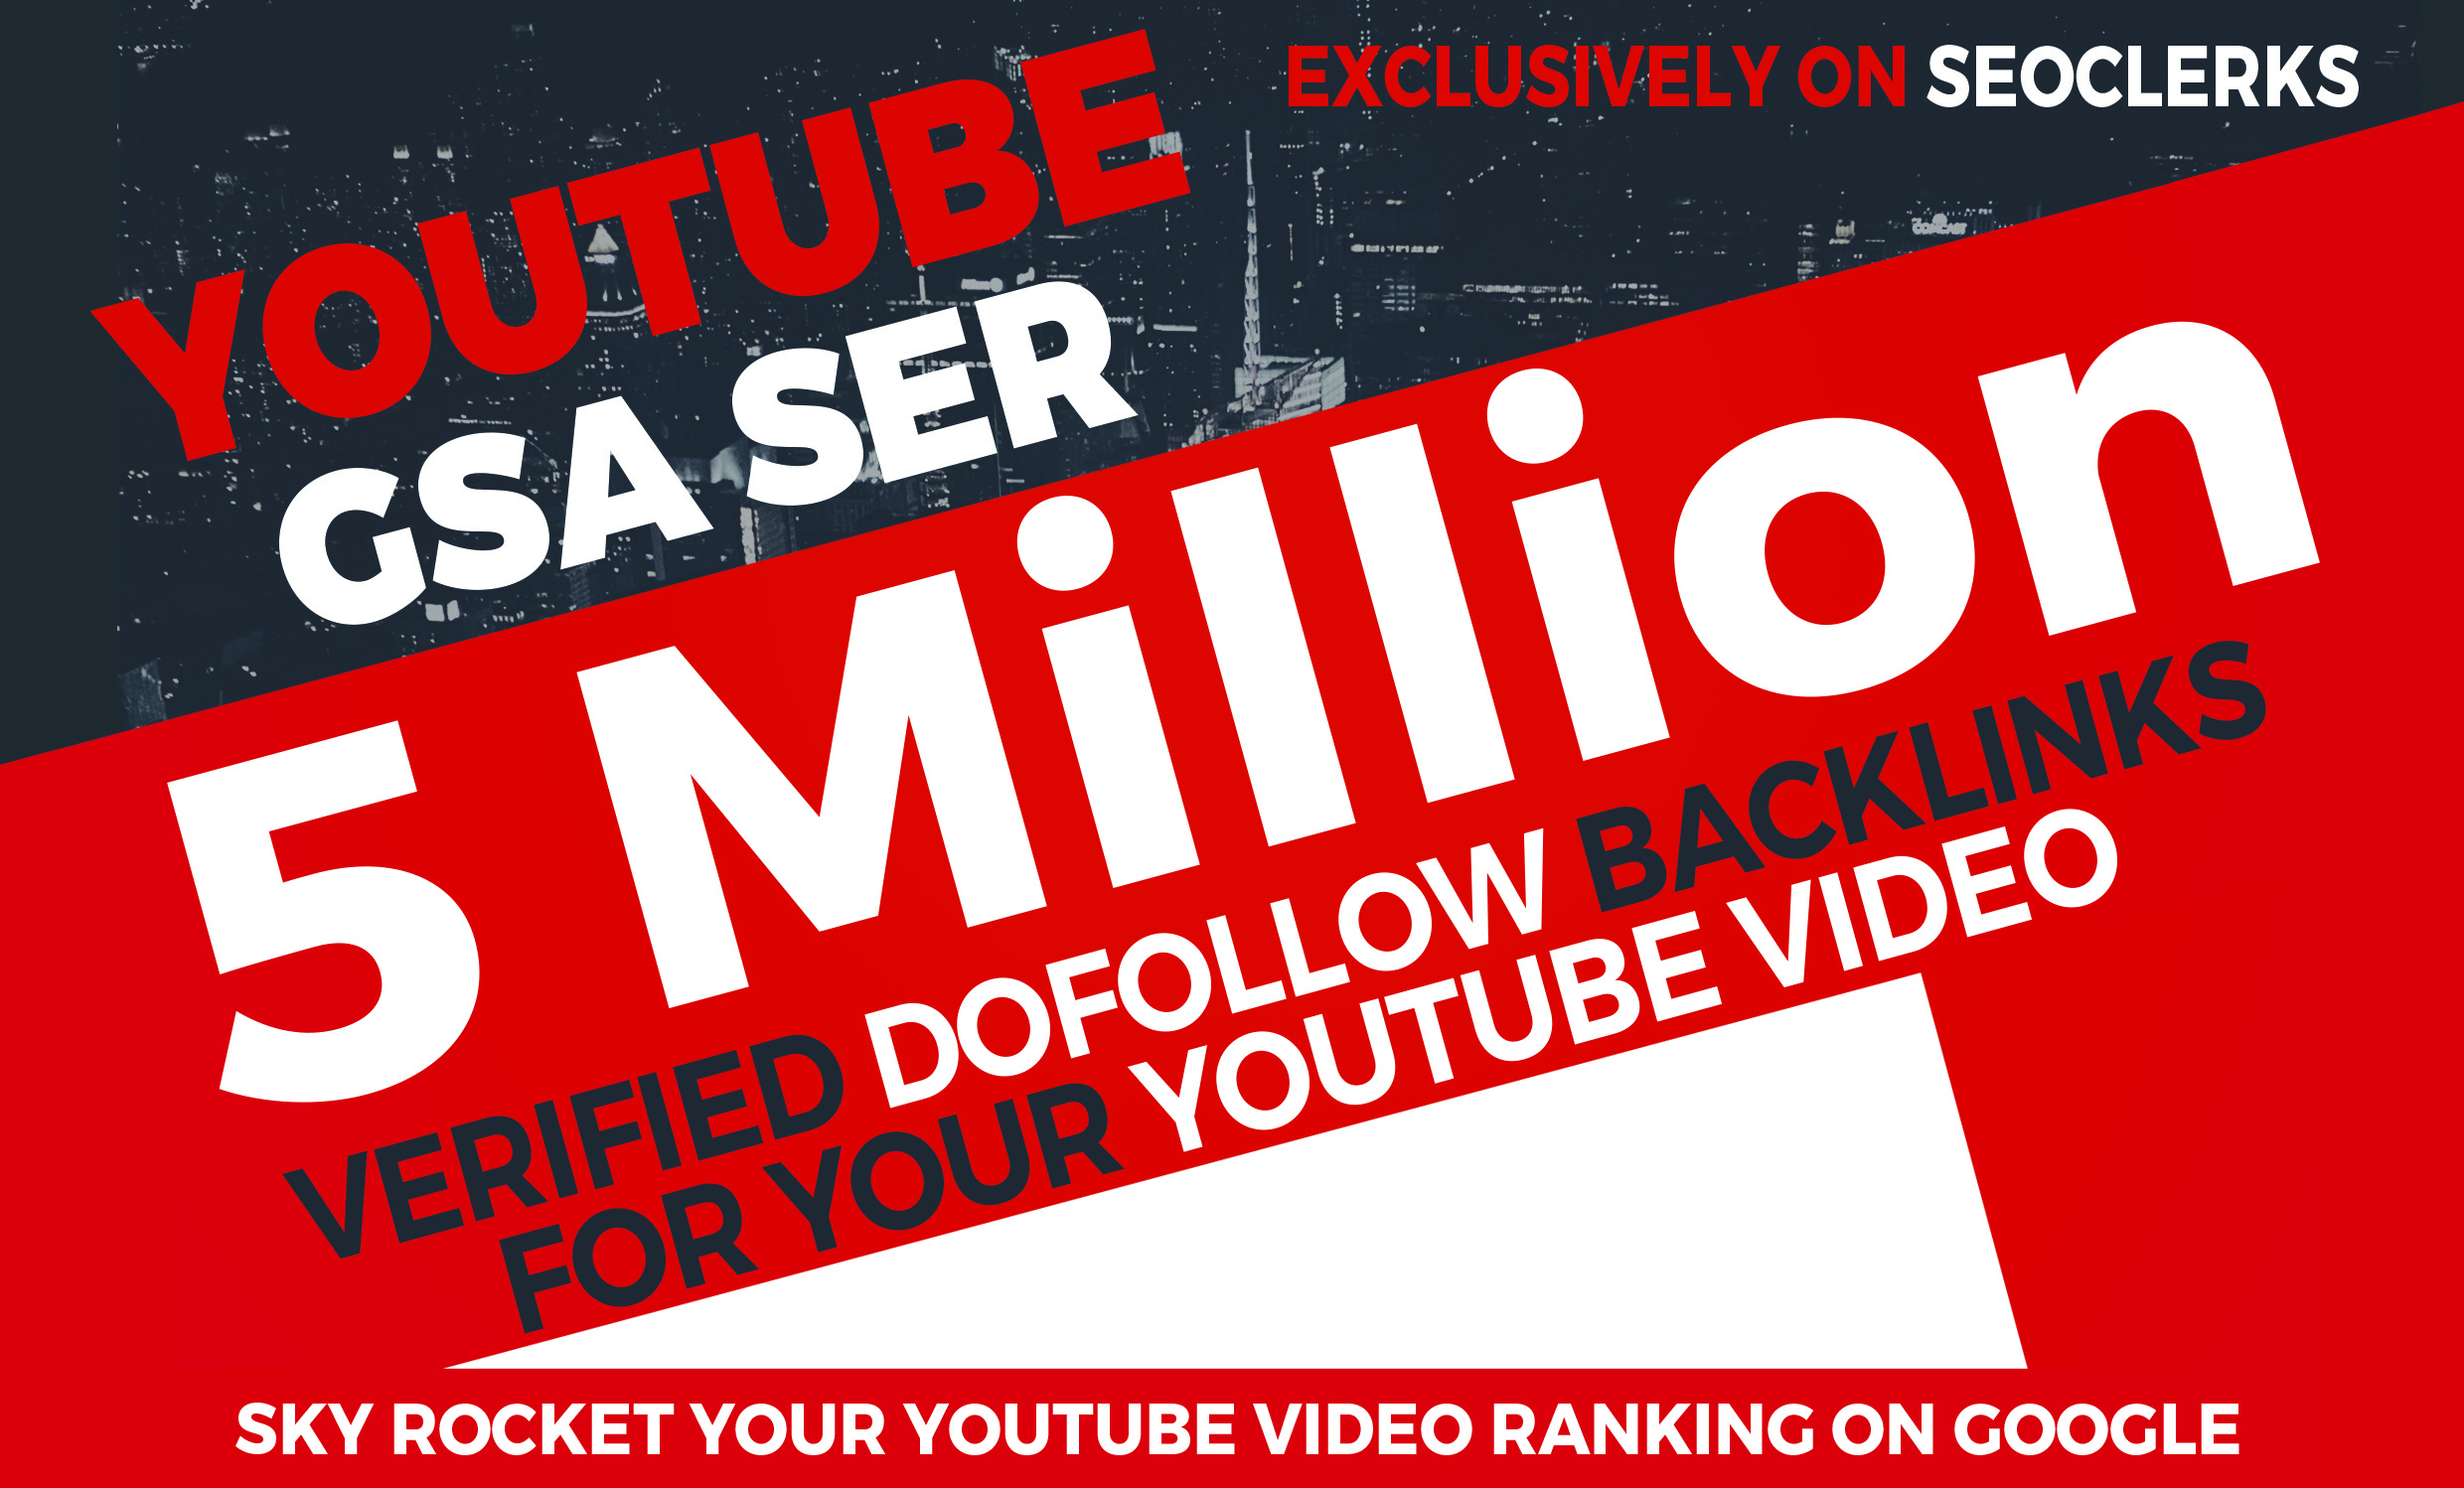 5 million YouTube GSA SER Verified backlinks to rate your video on Google